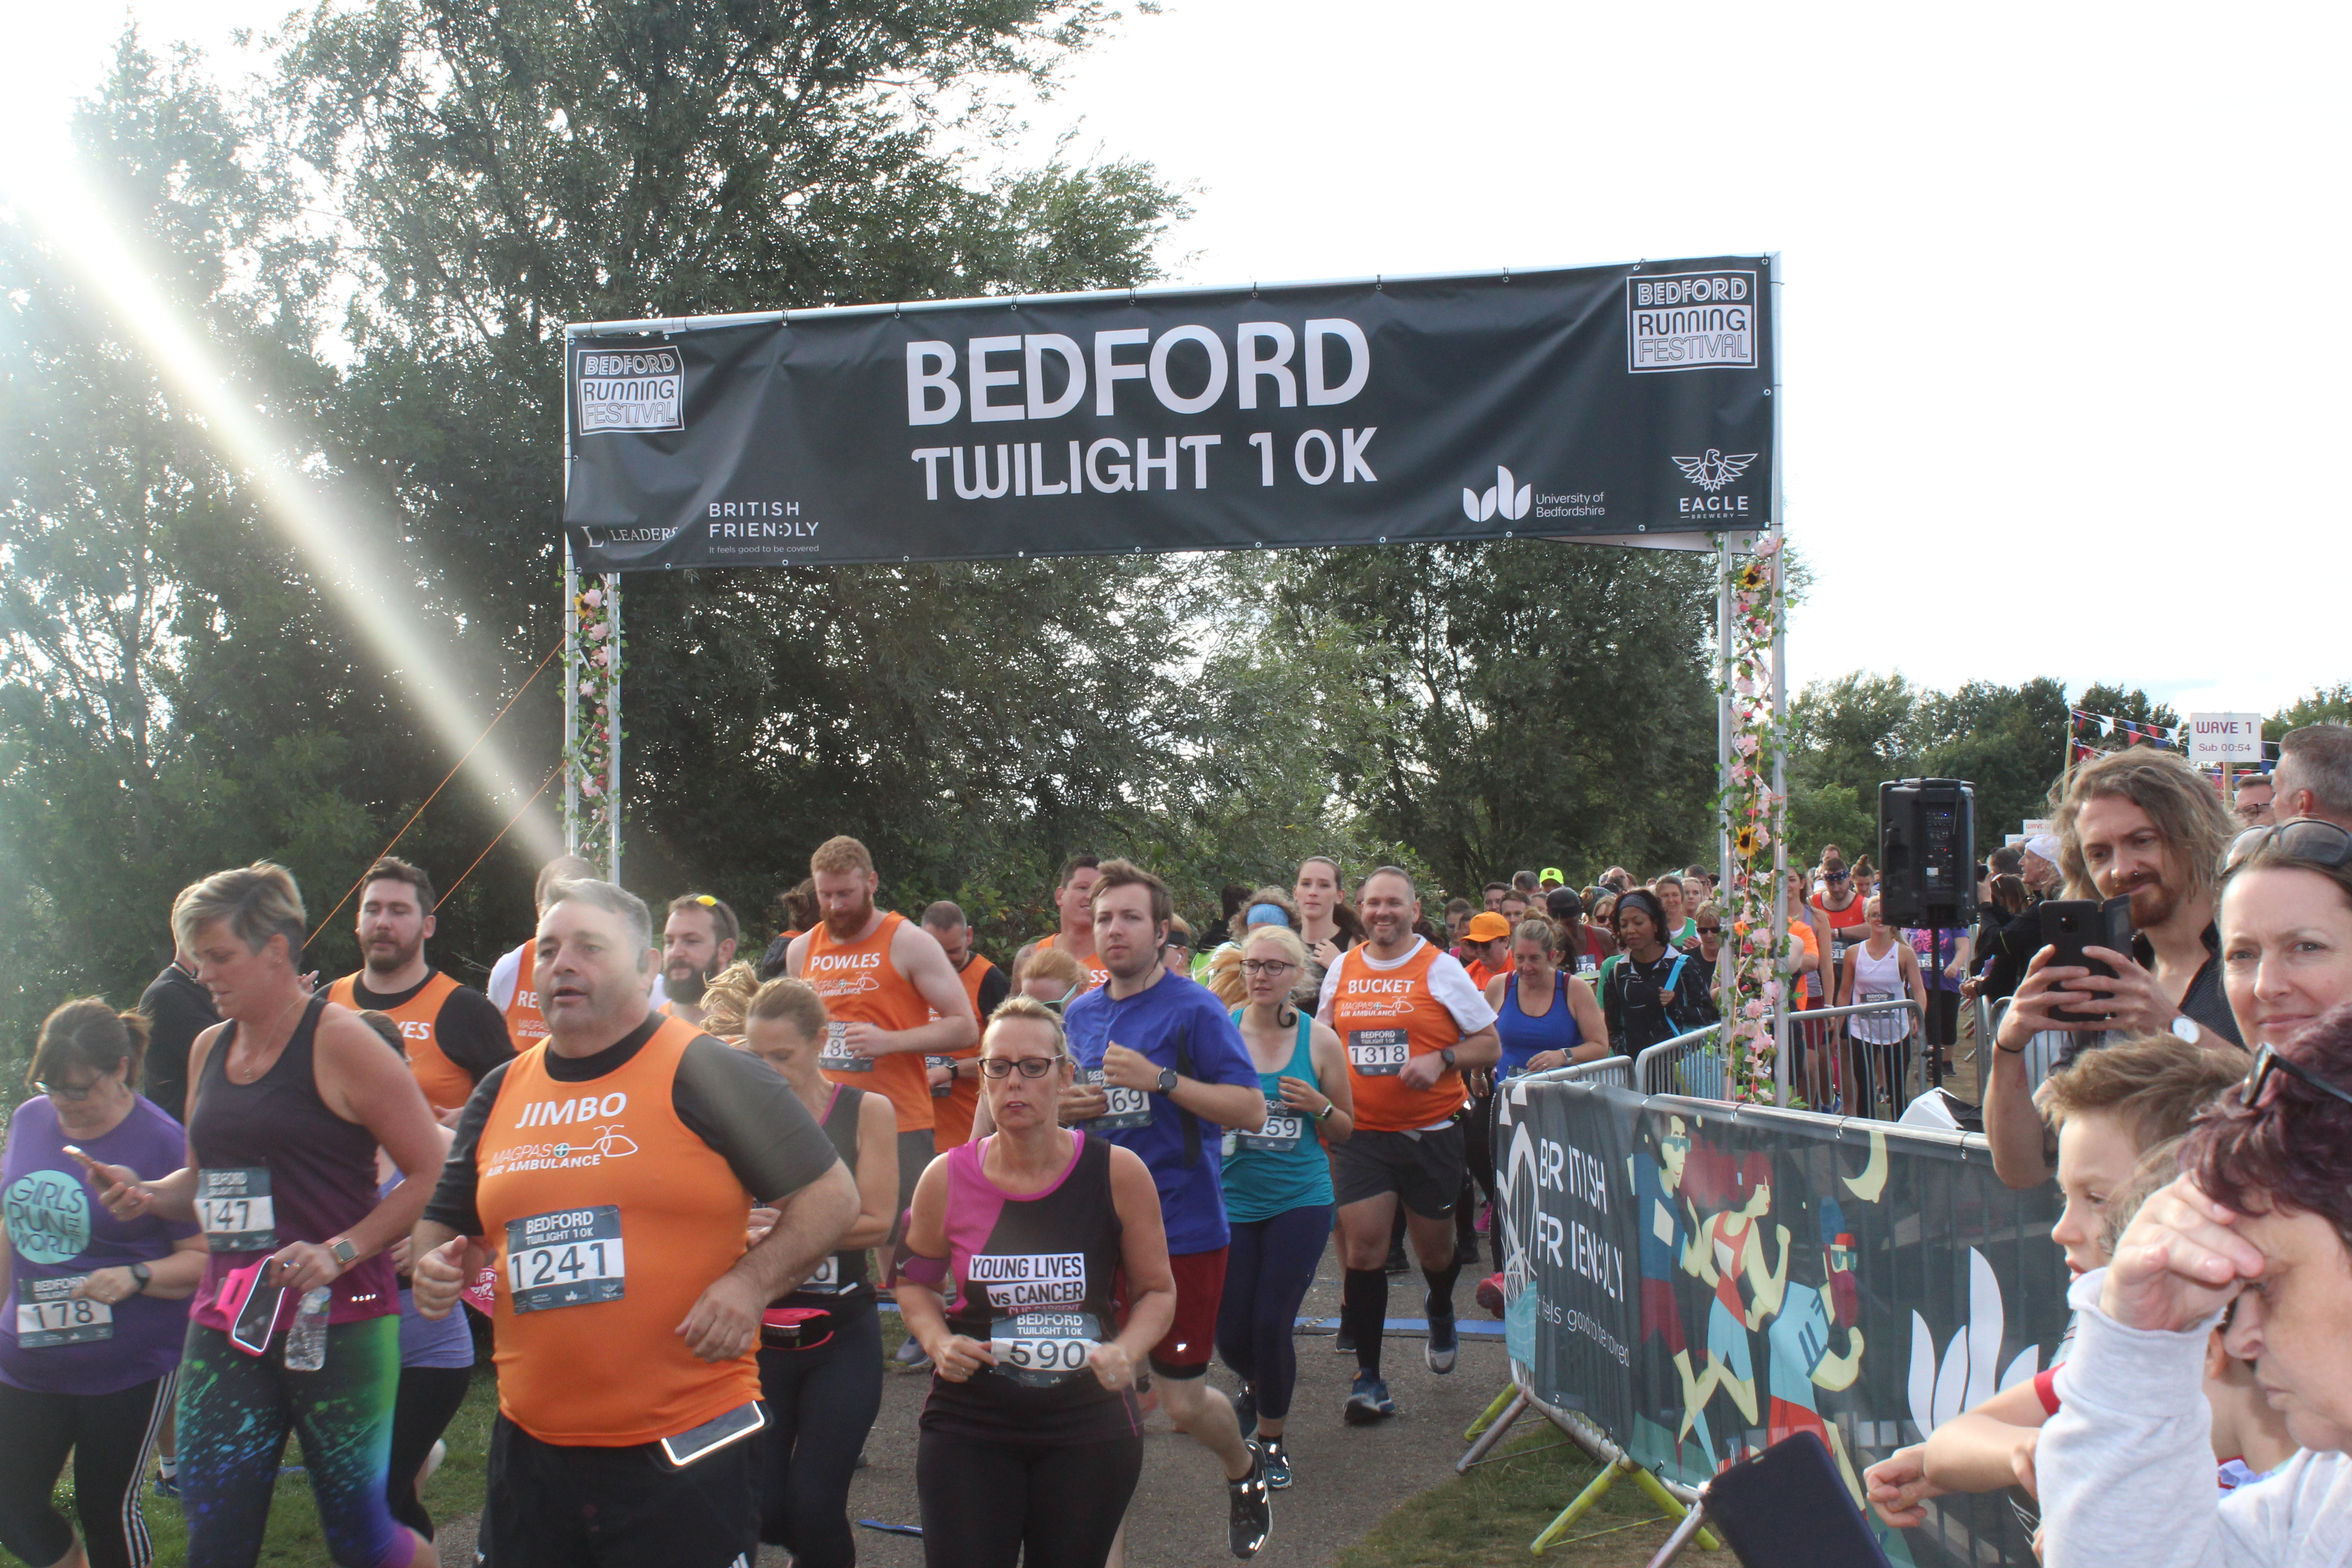 Magpas runners in the Bedford Twilight 10k